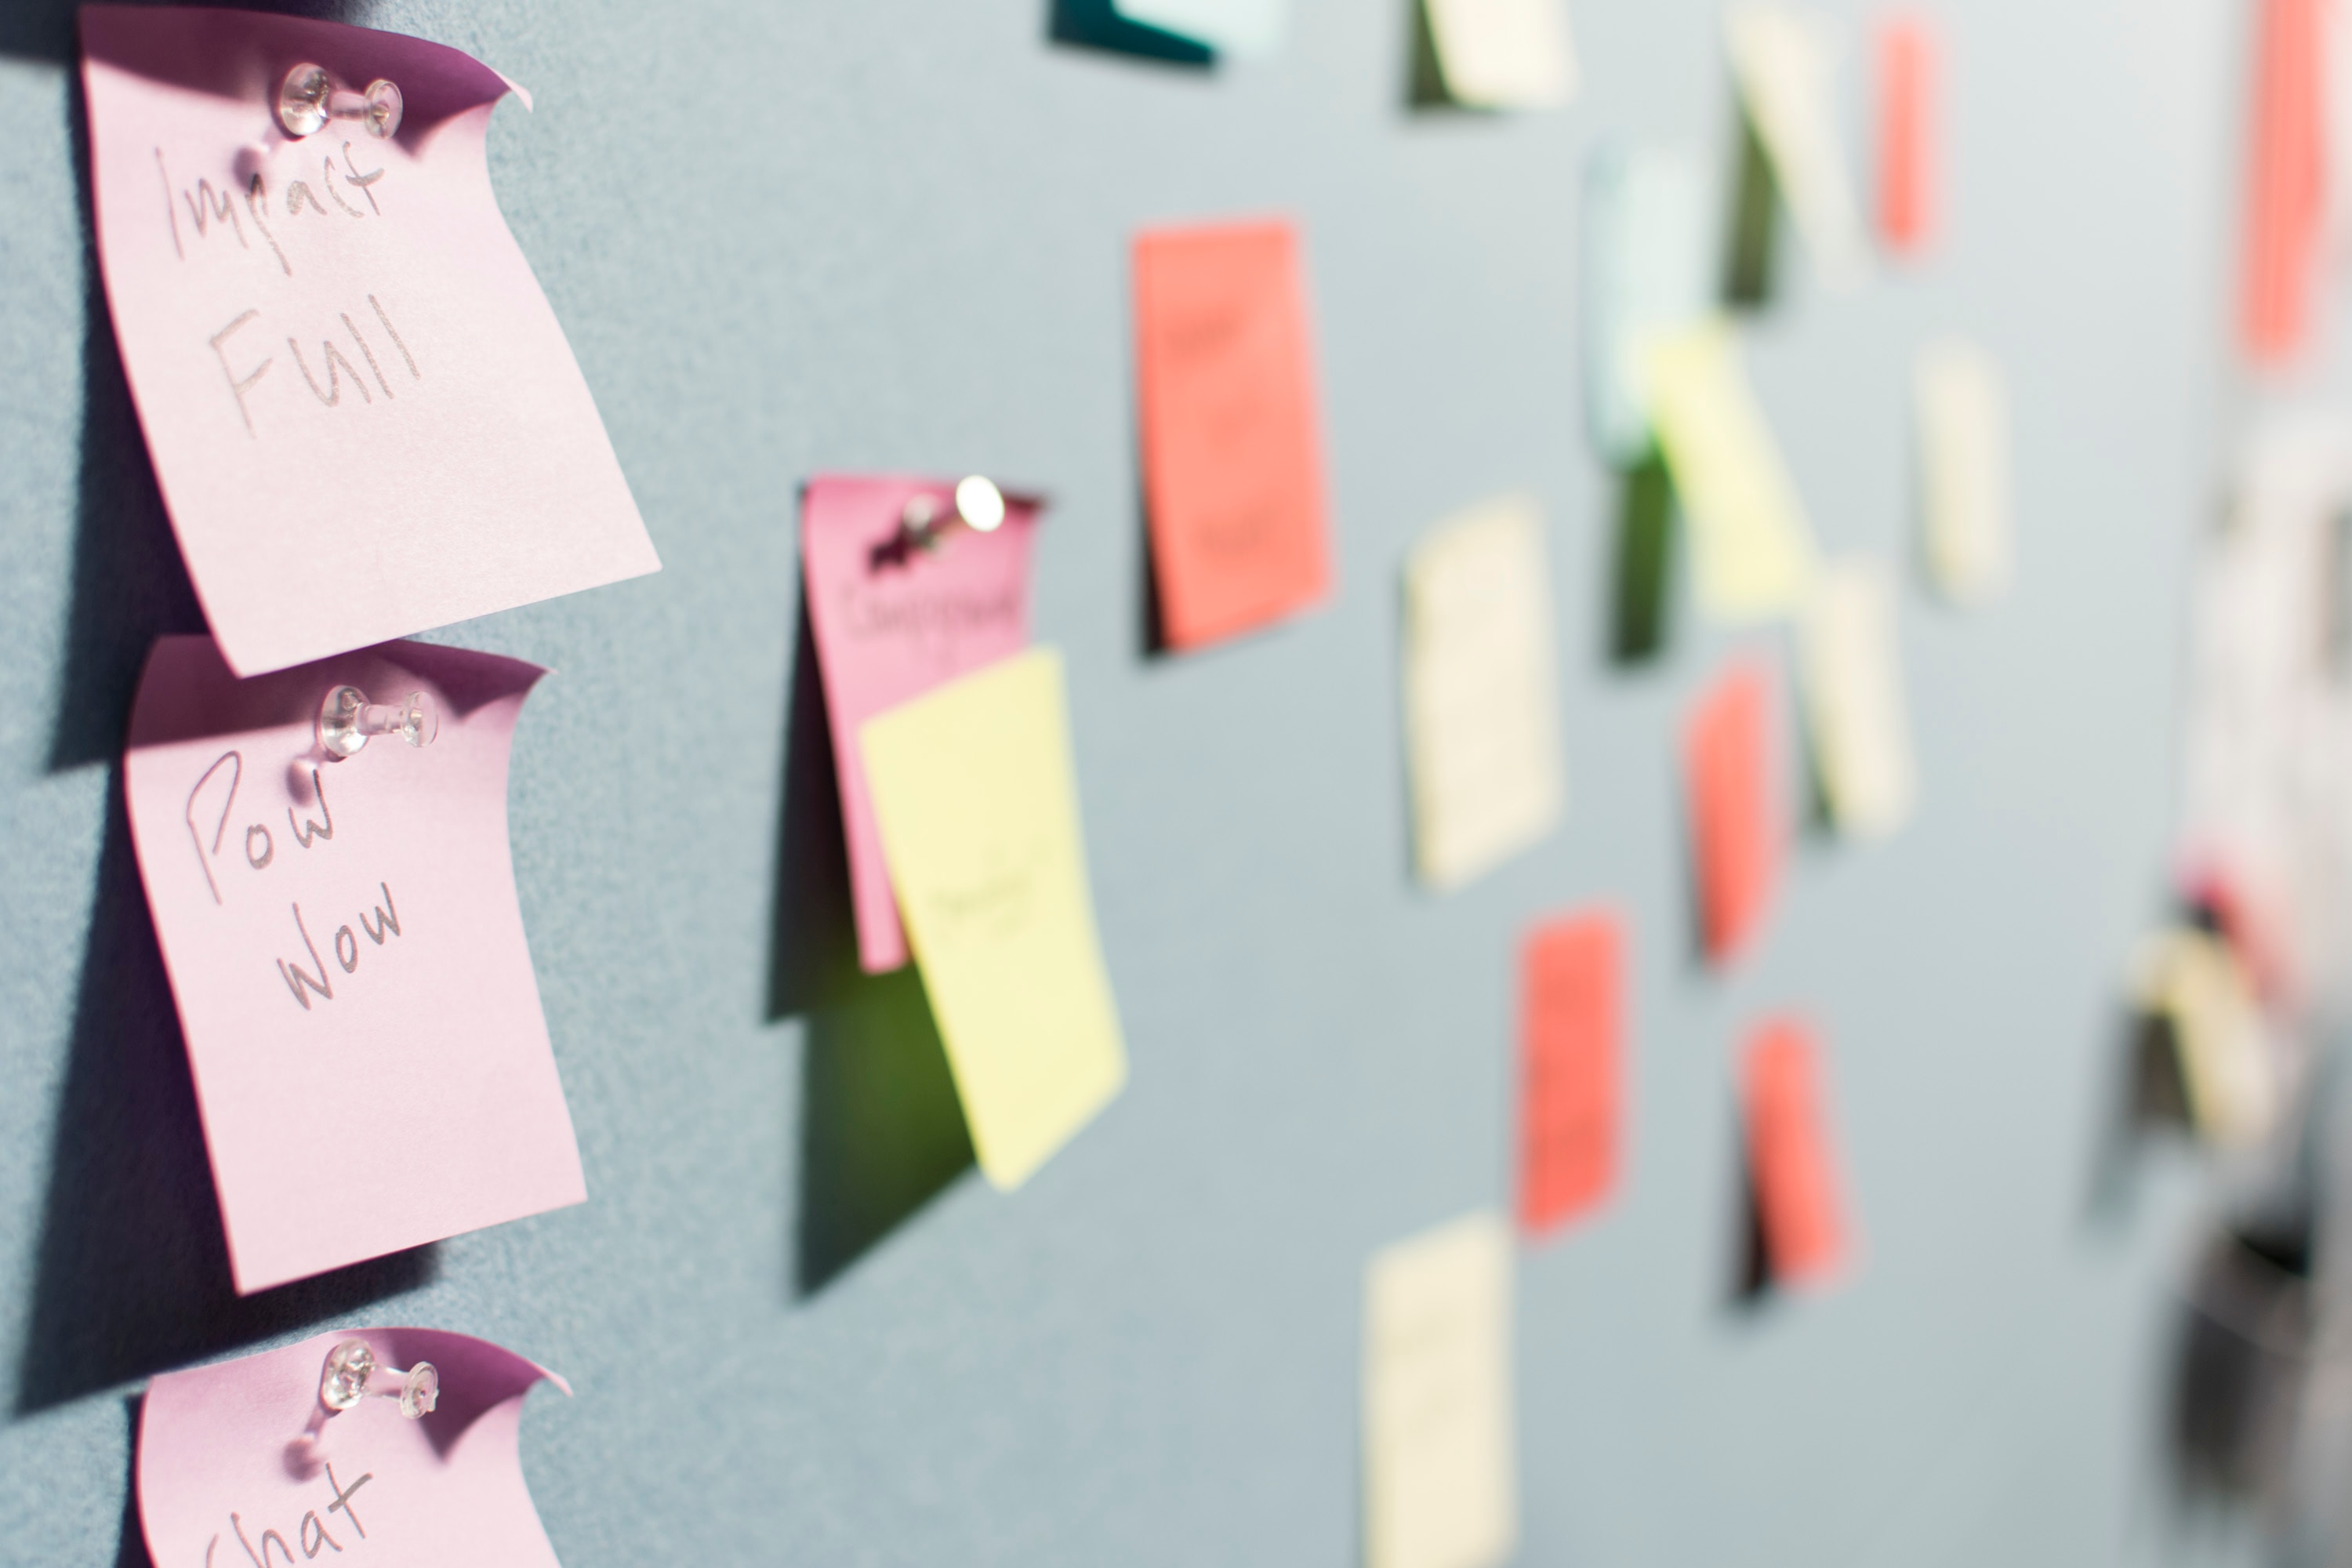 A number of colorful sticky notes are pinned to a wall. Asking questions to reflect back on the Scripture you've just read can help your non-believer friend find the meaning in the Word.